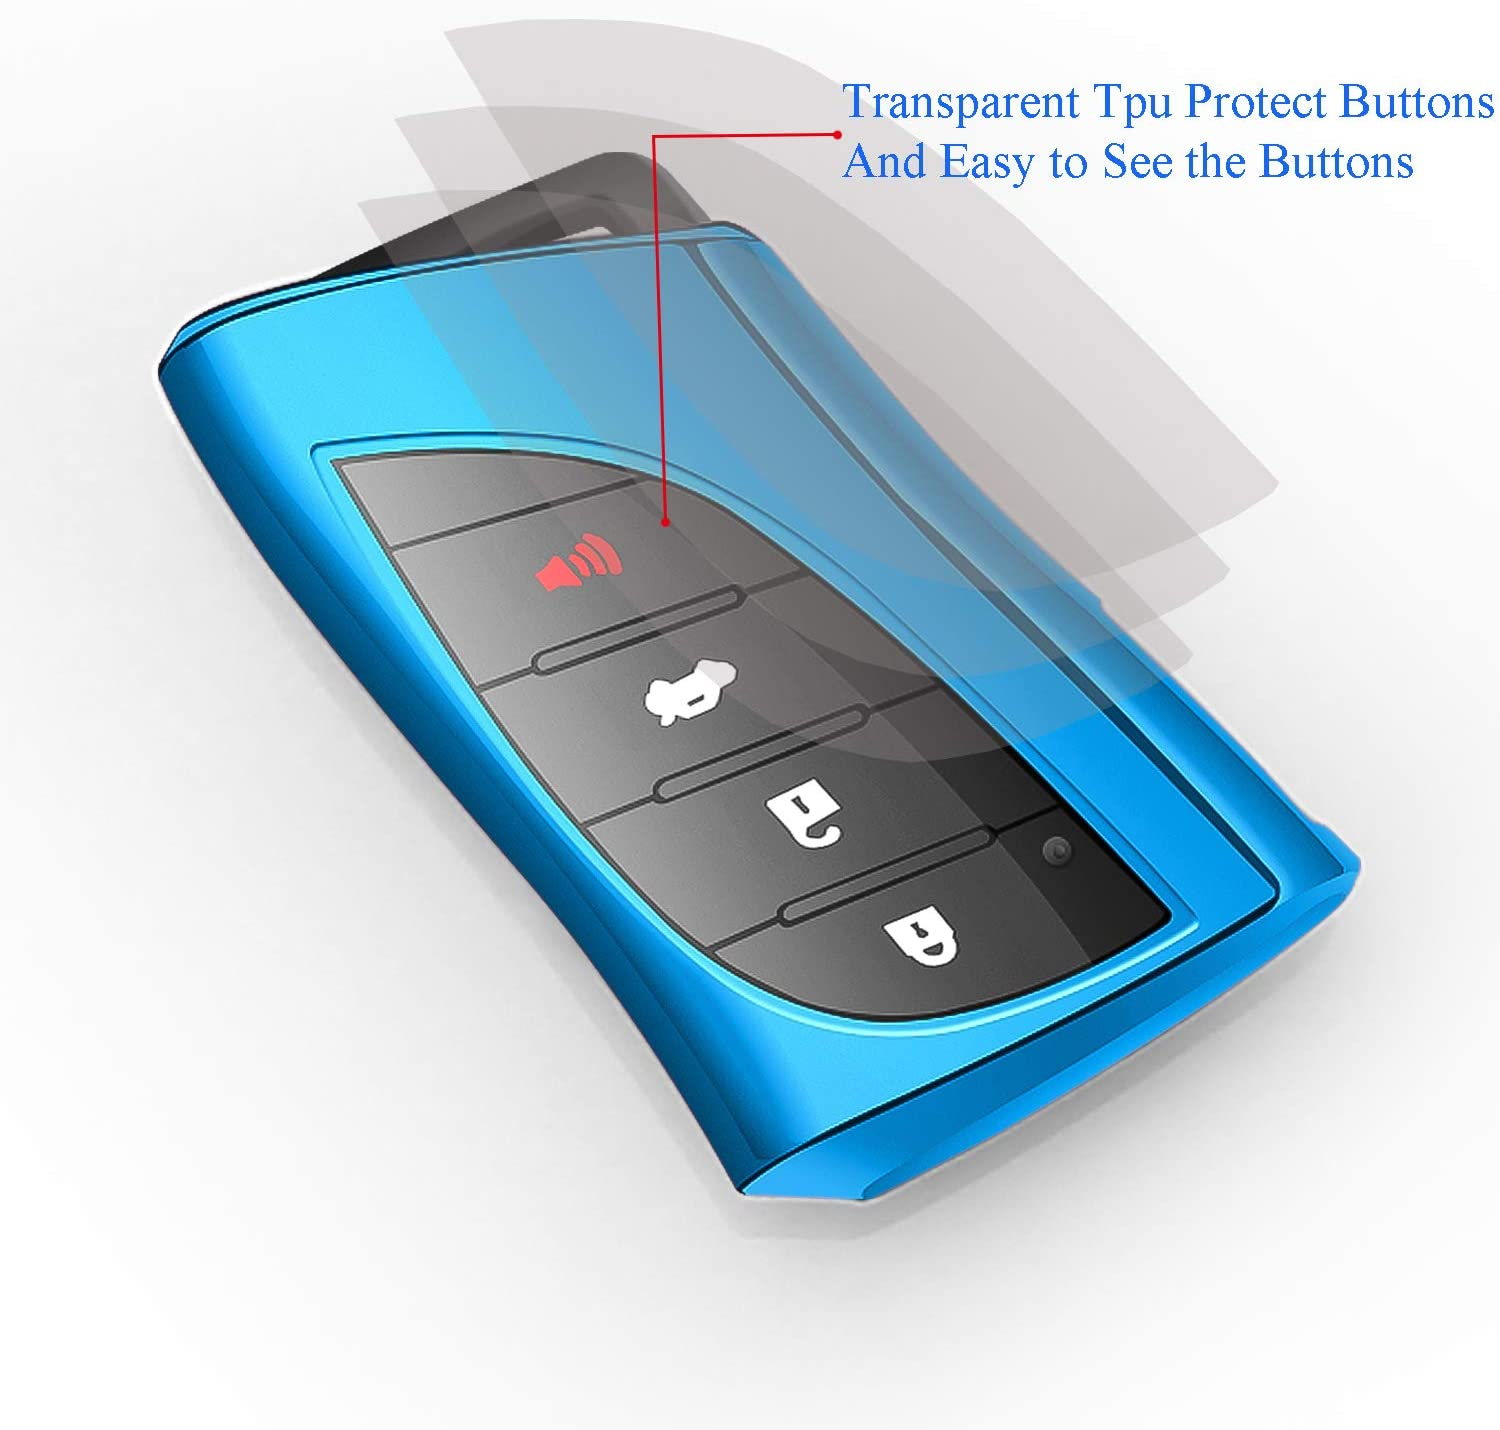 Autophone for Lexus Key fob Cover with Keychain Soft TPU 360 Degree Protection Key Case Compatible with 2018 2019 2020 Lexus UX200 LS500 LS500H LC500 LC500h ES300h ES350 Smart Key Blue